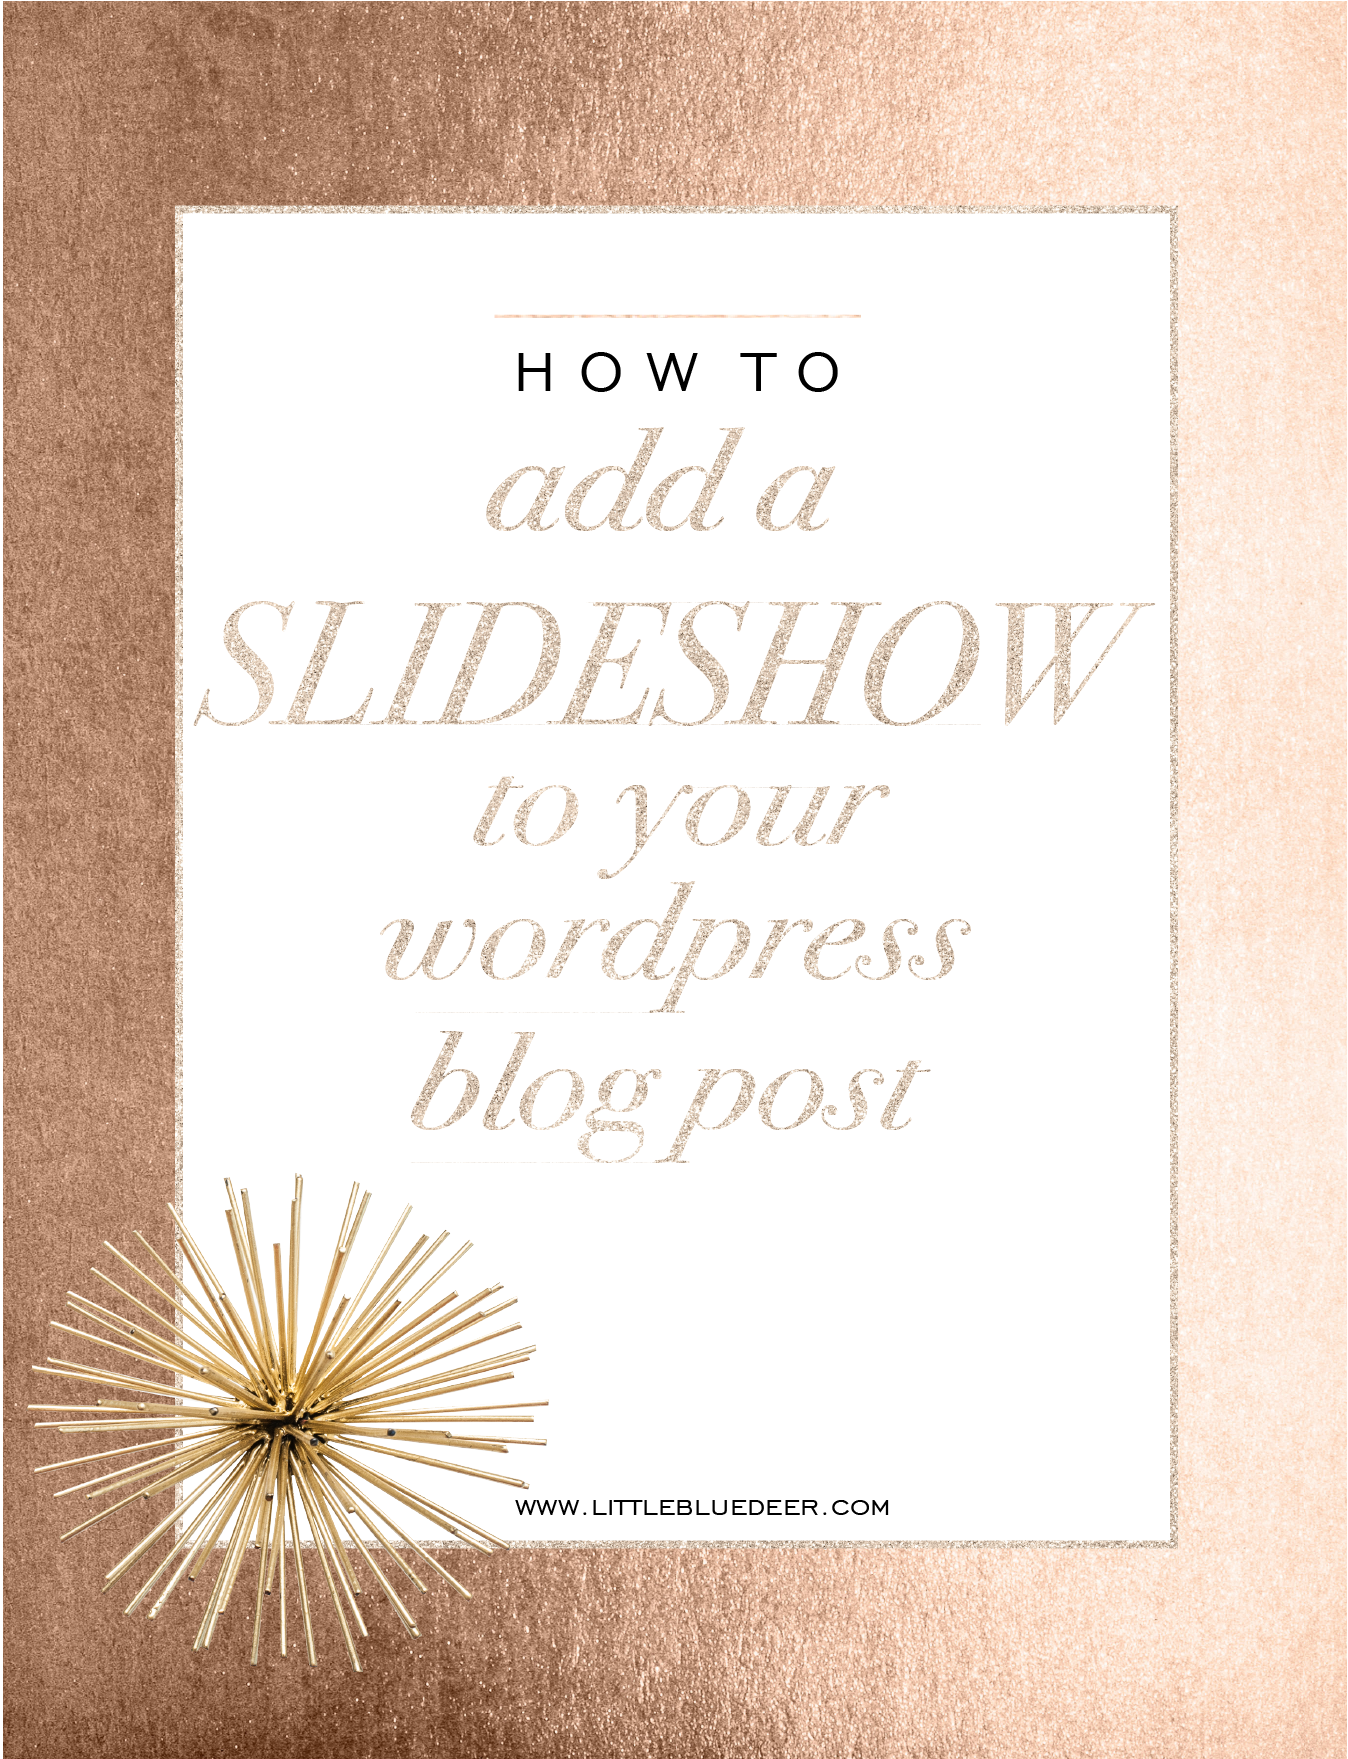 how to add a slideshow in a wordpress blog post